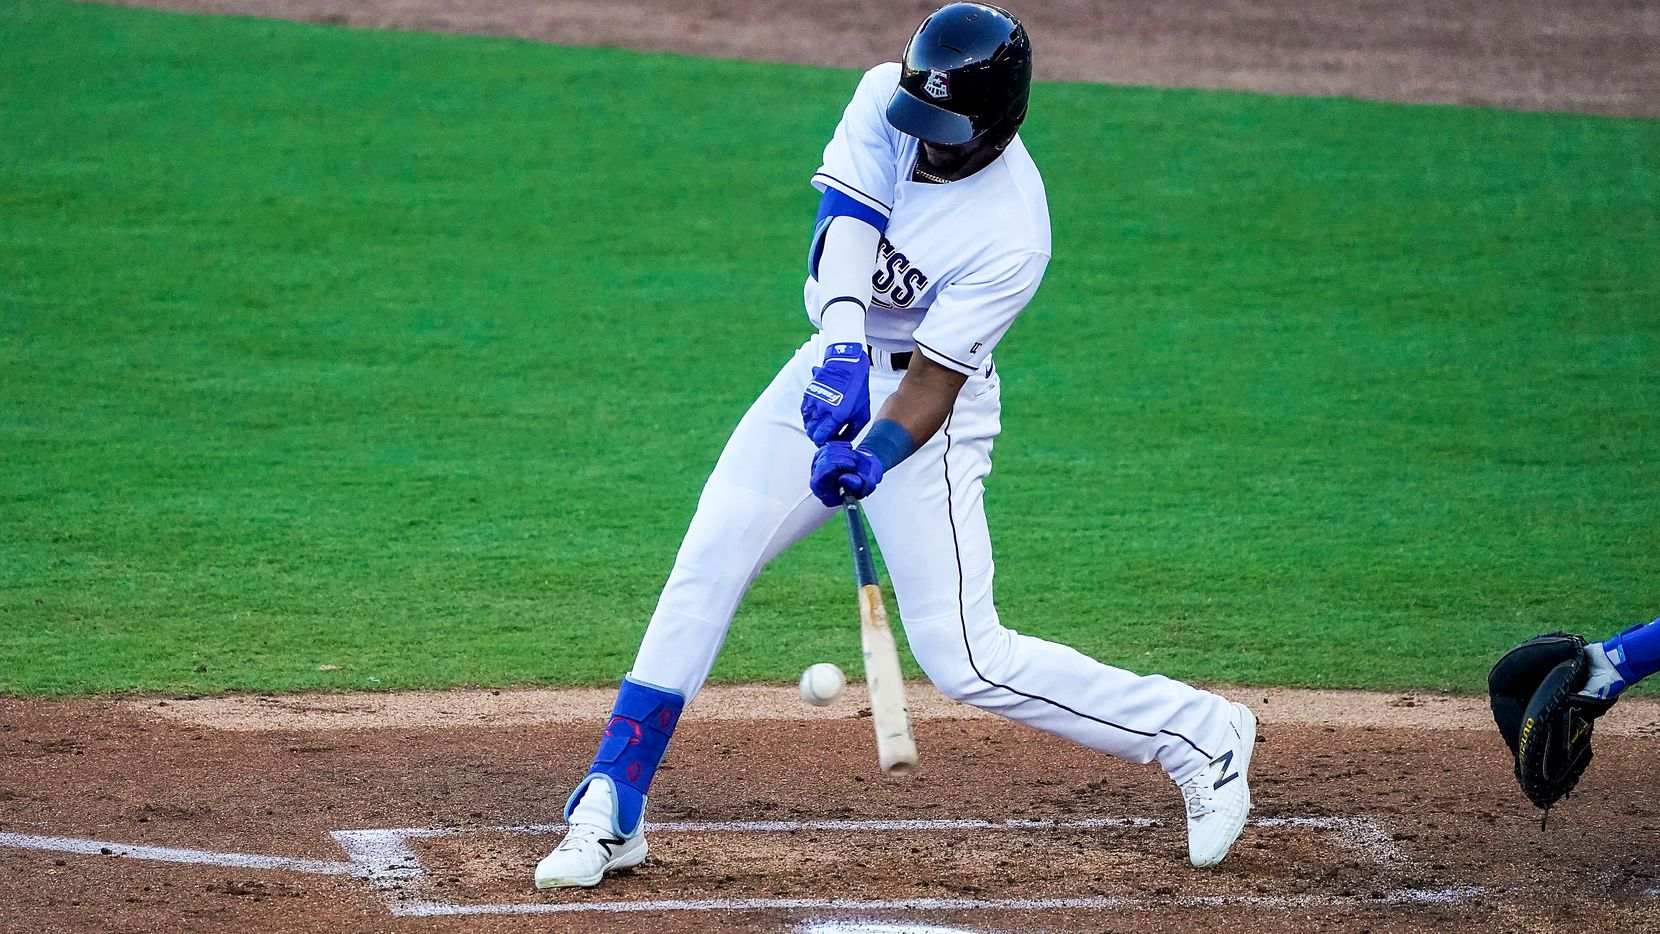 Round Rock Express outfielder Leody Taveras bats during the first inning against the Oklahoma City Dodgers at Dell Diamond on Thursday, May 6, 2021, in Round Rock, Texas. (Smiley N. Pool/The Dallas Morning News)